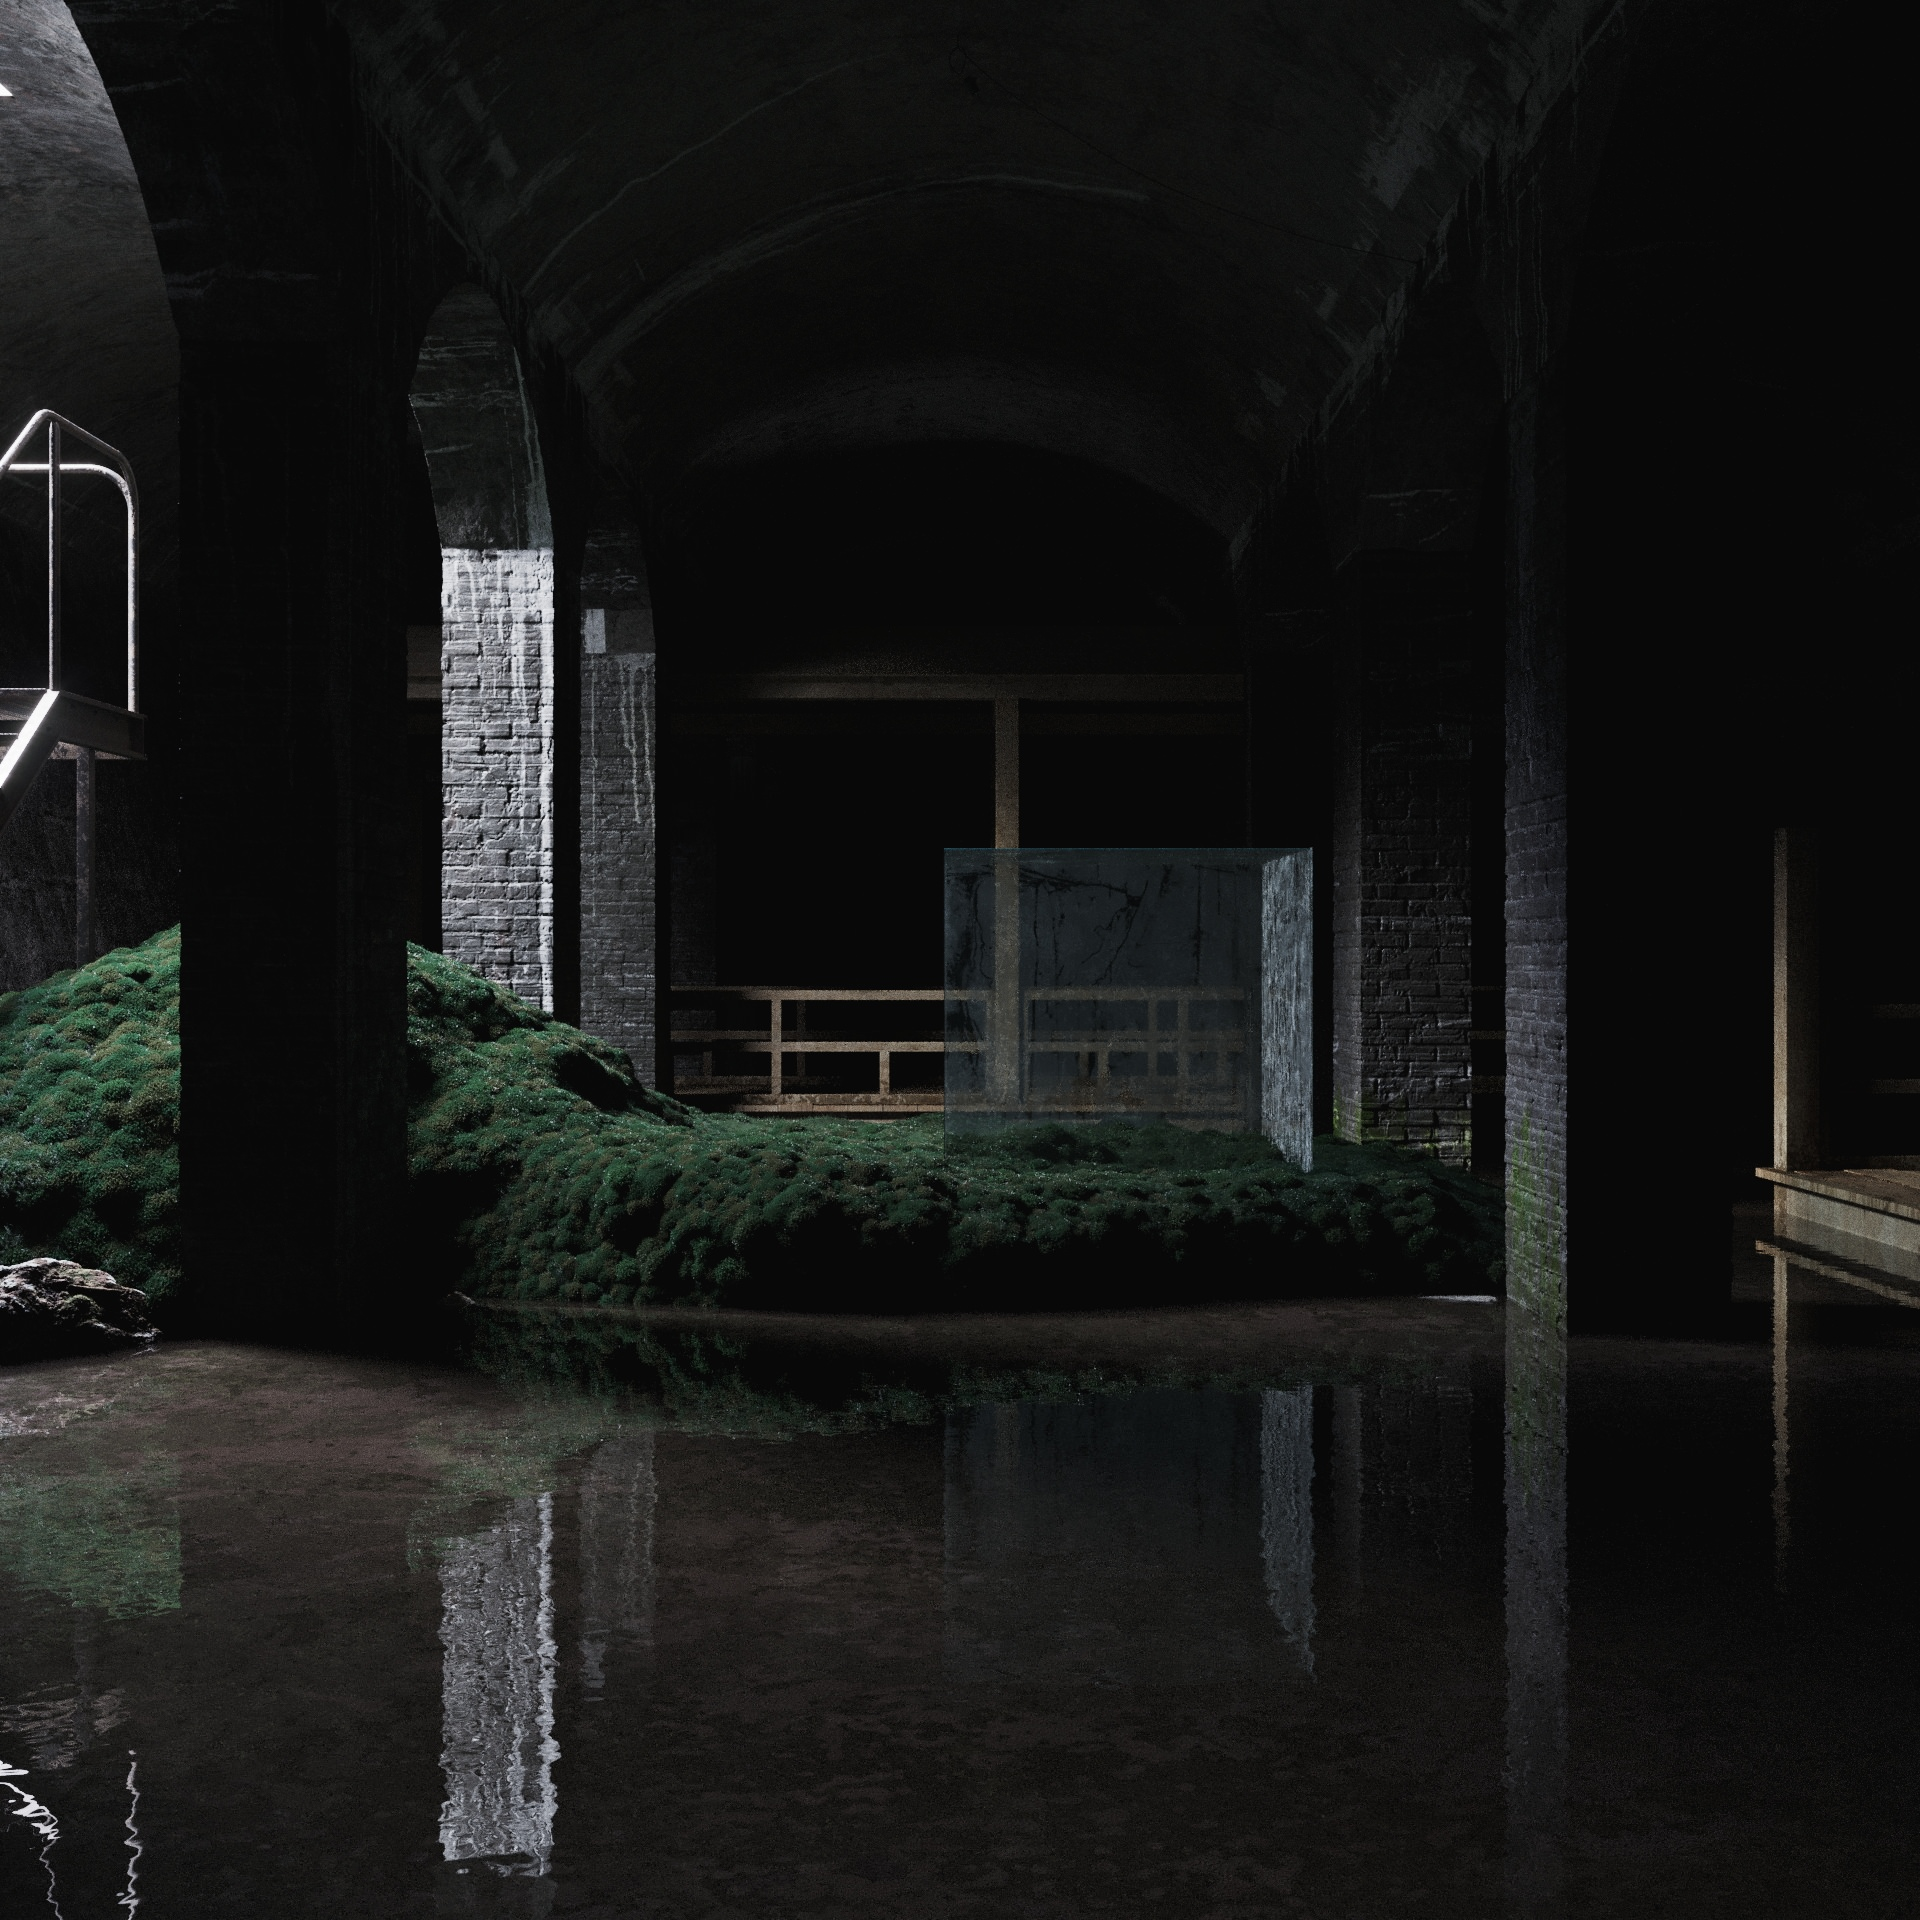 Interior 3D visualization of art gallery Cisternerne situated in the underground water reservoir in Copenhagen, Denmark, filled with natural light, moss and water, featuring a freestanding glass cube